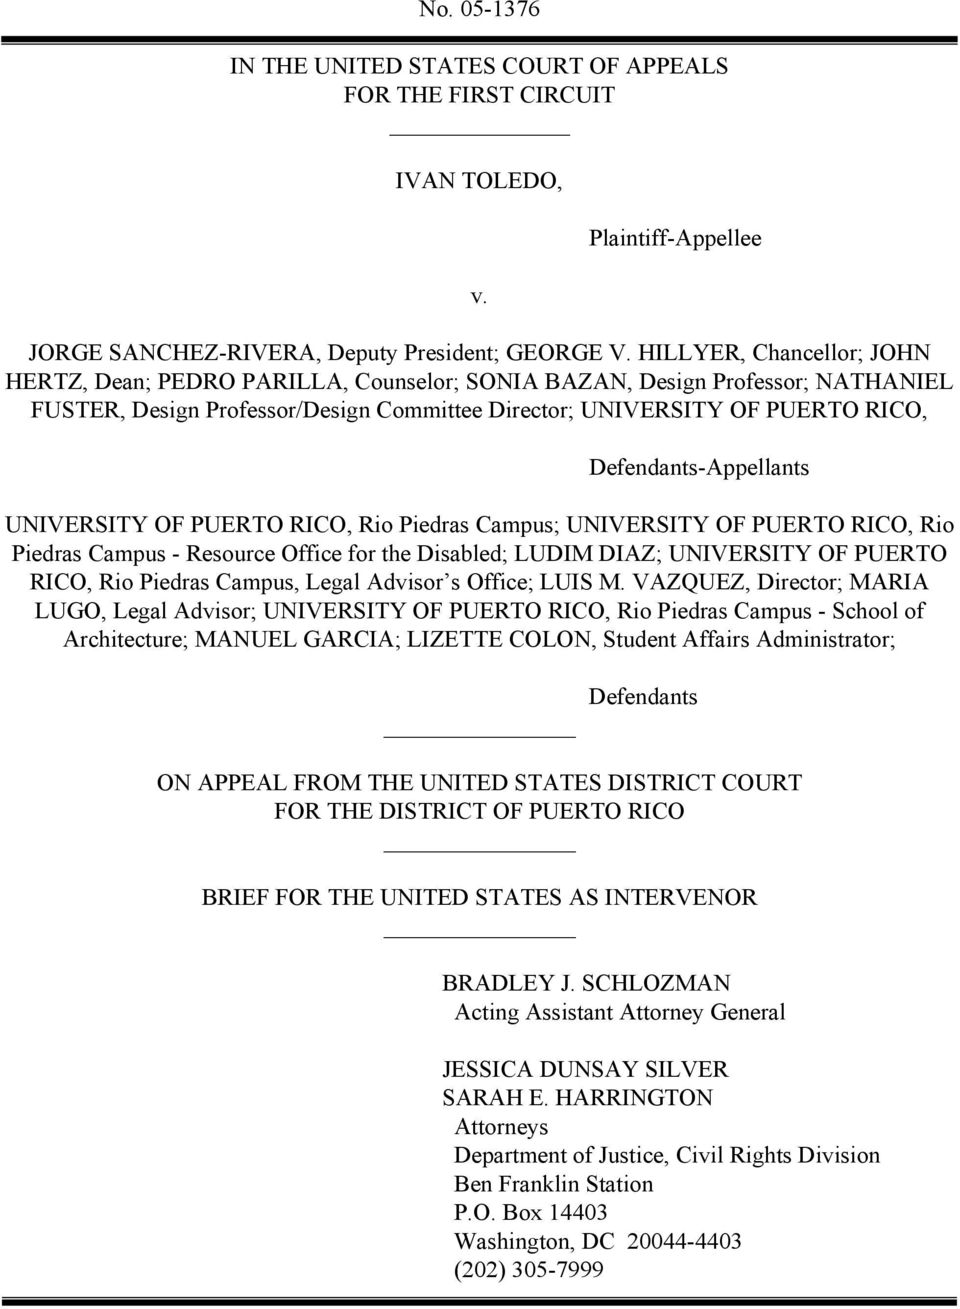 Defendants-Appellants UNIVERSITY OF PUERTO RICO, Rio Piedras Campus; UNIVERSITY OF PUERTO RICO, Rio Piedras Campus - Resource Office for the Disabled; LUDIM DIAZ; UNIVERSITY OF PUERTO RICO, Rio